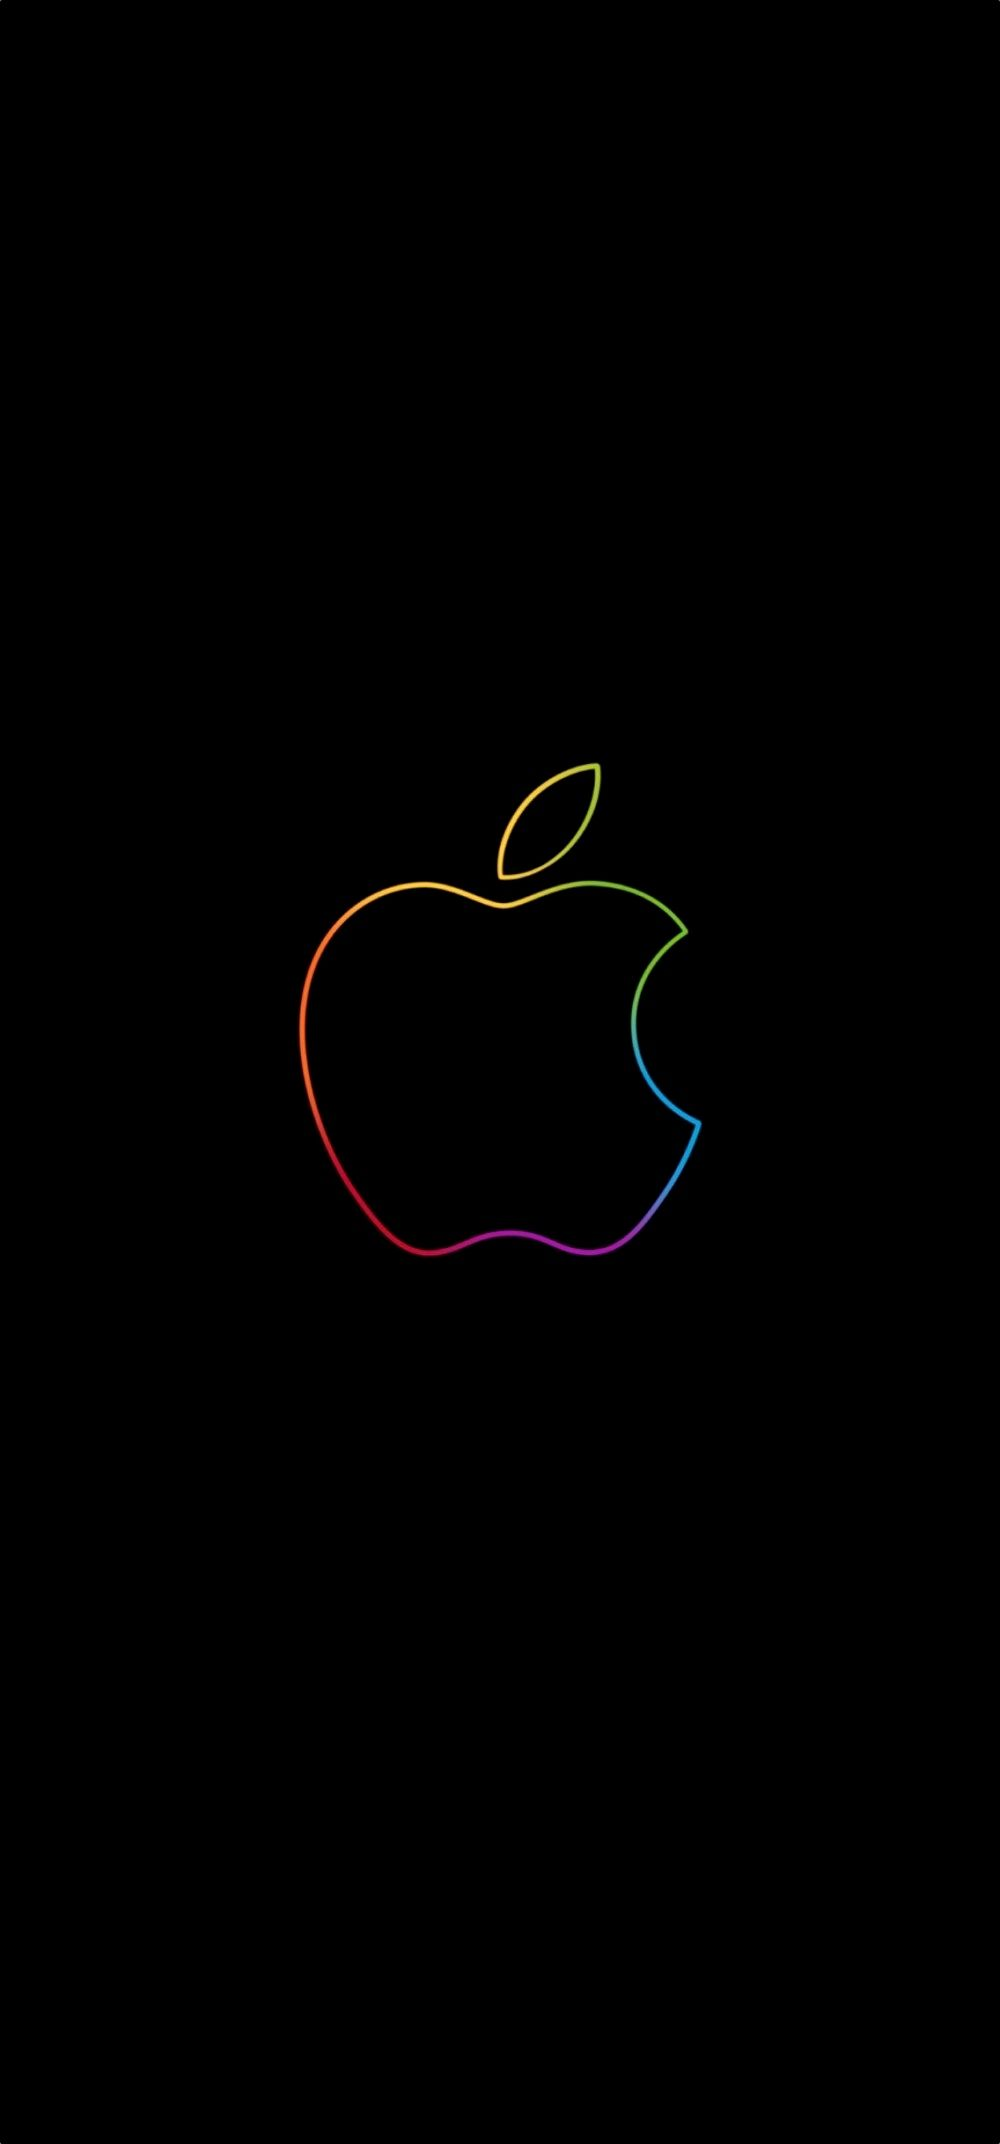 Apple Wallpaper 4k Iphone X Gallery Hintergrund Apfel